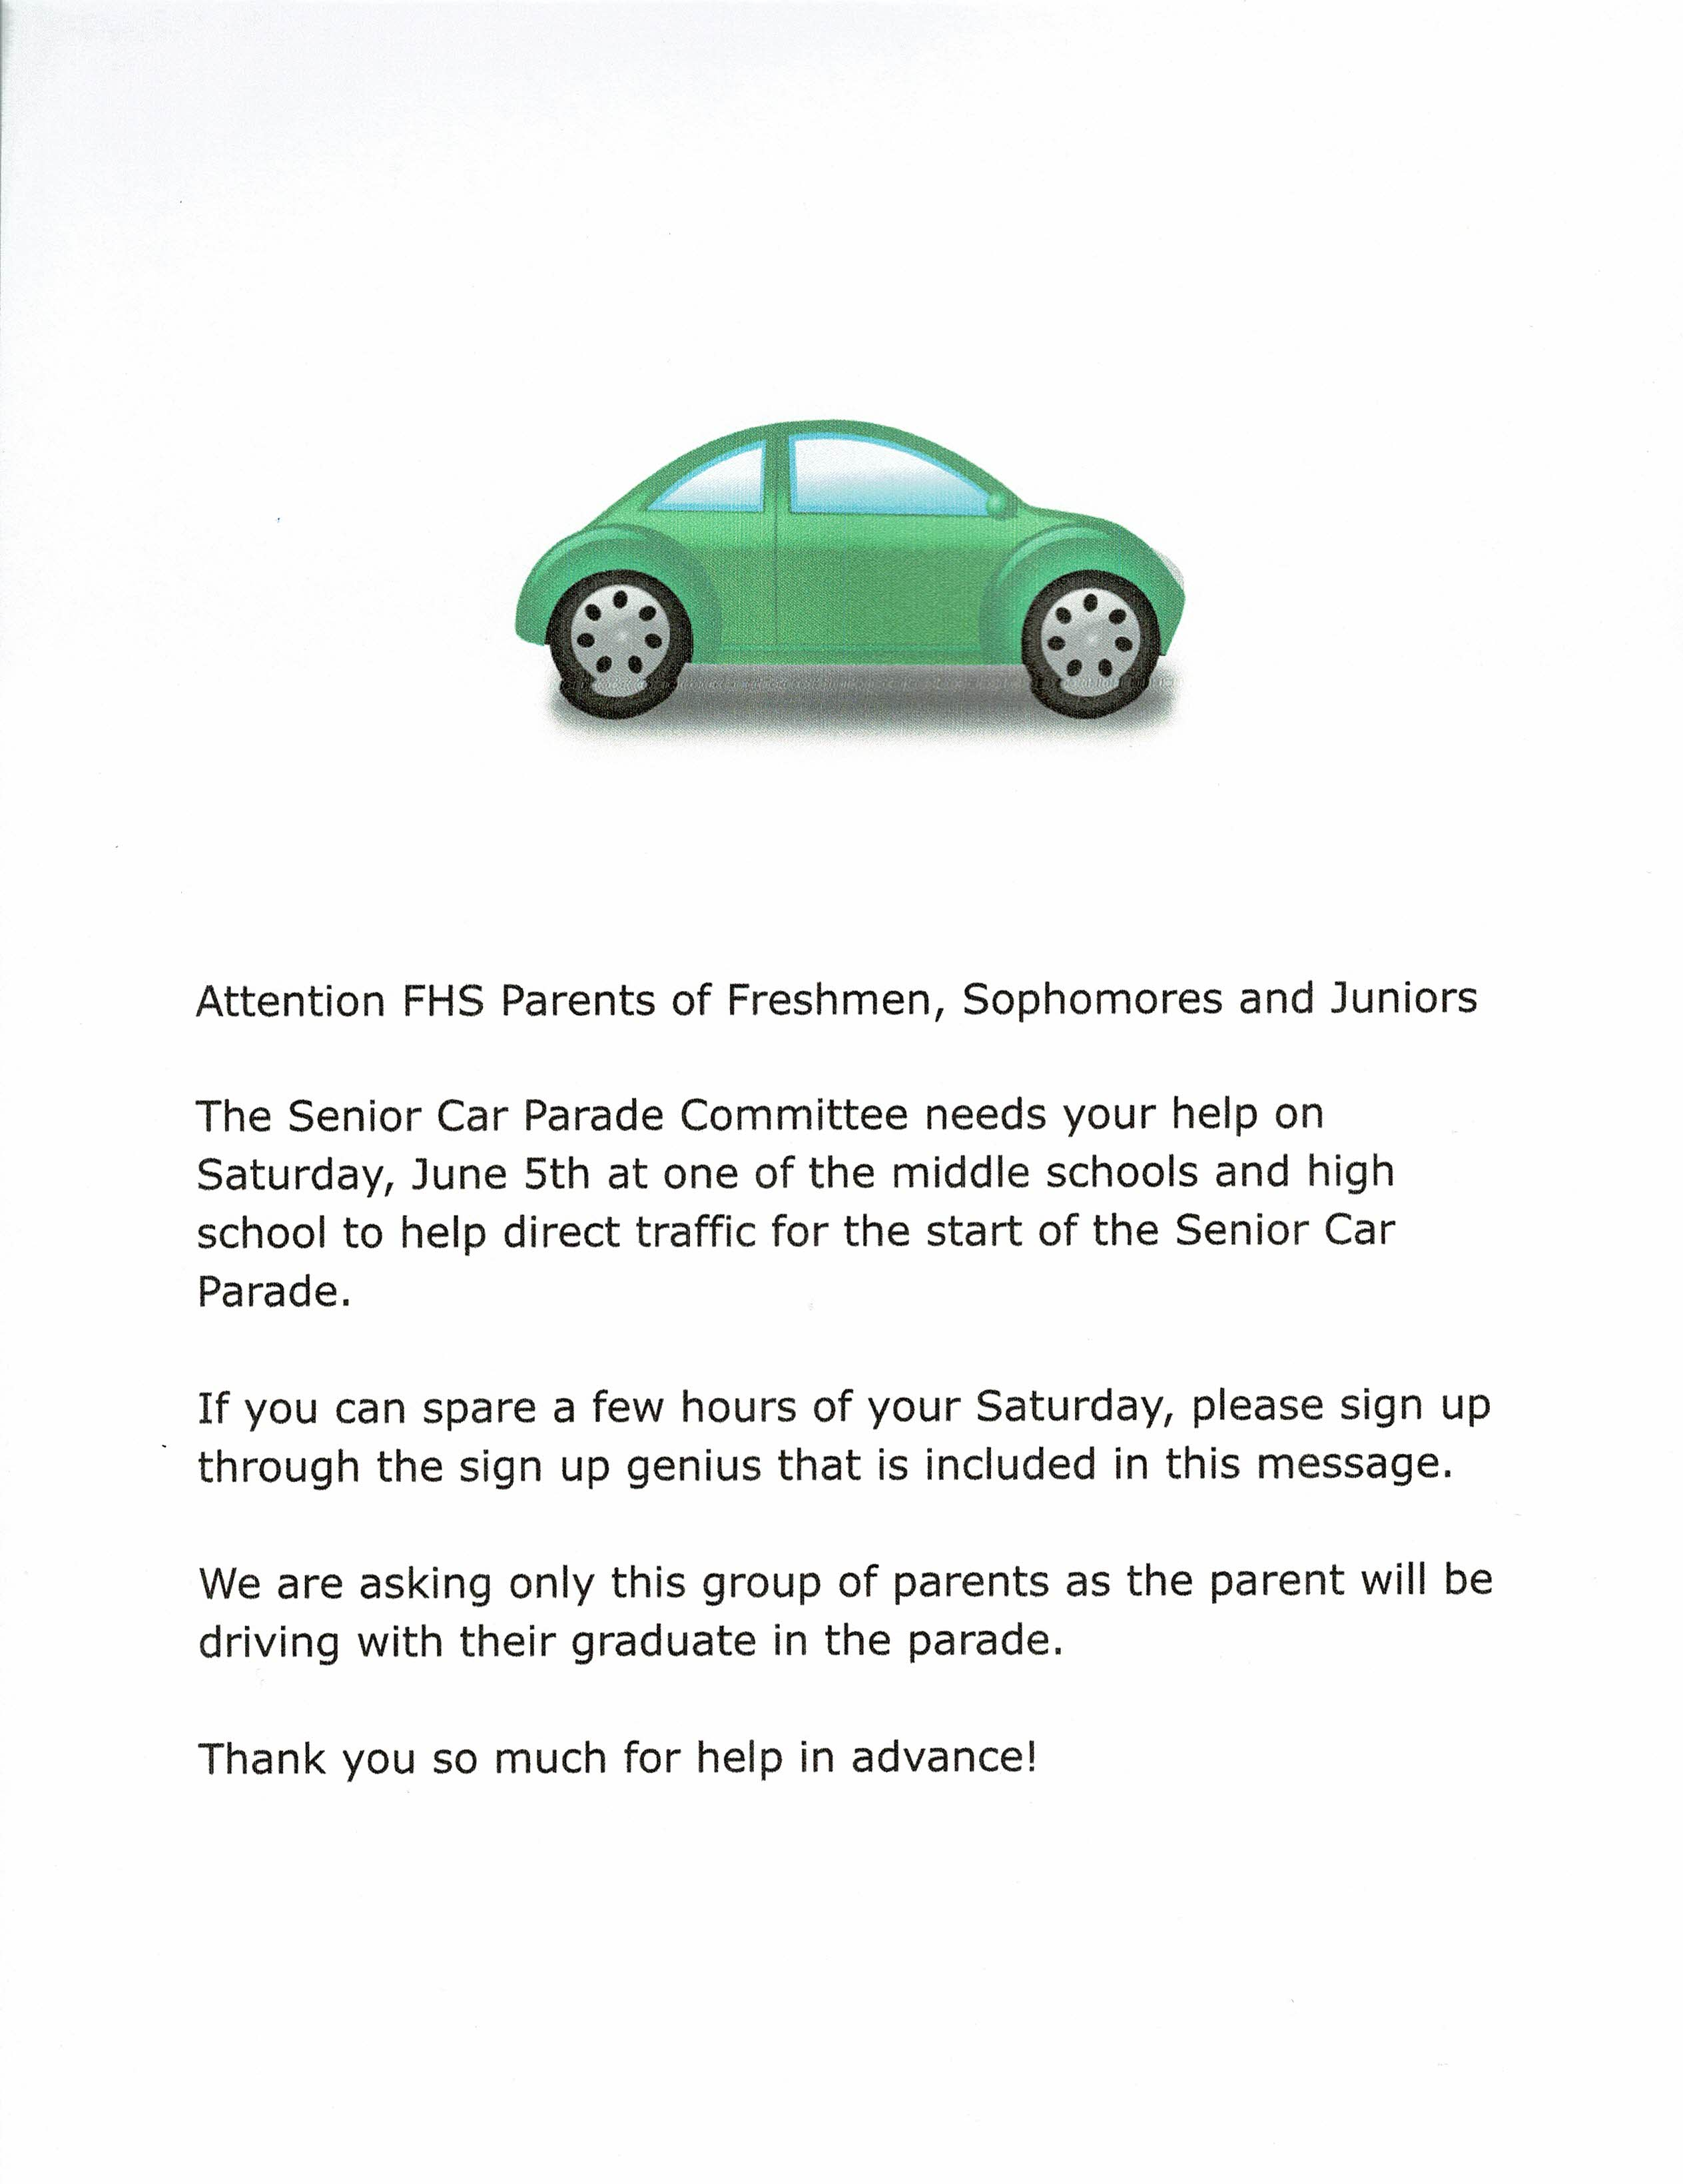 FHS PCC: Attention parents, Senior Car Parade can use your help